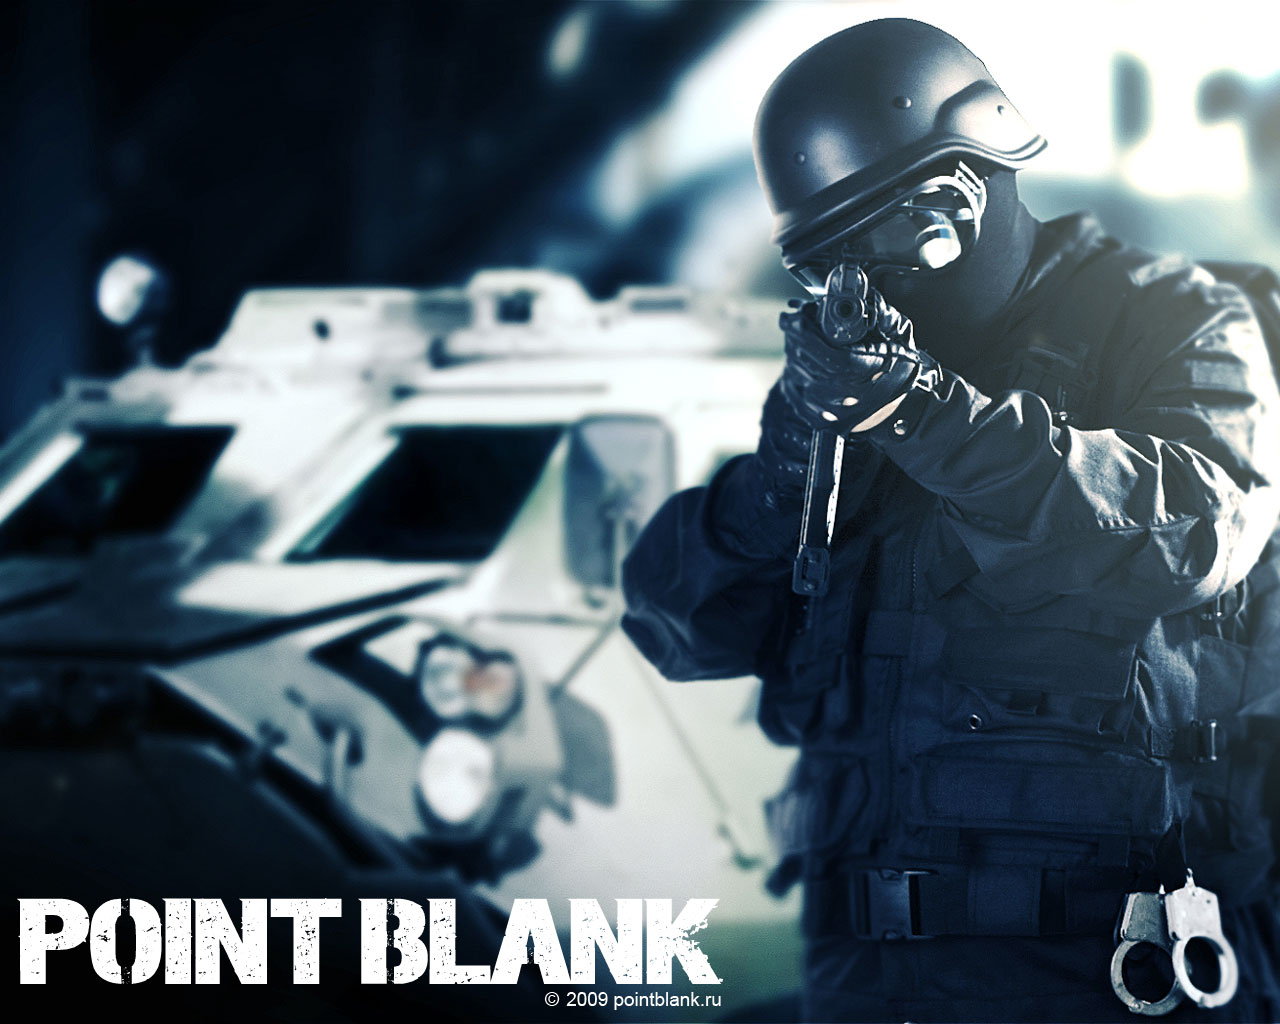 point-blank-video-game-wallpapers,pOINT bLANK hd WALLPAPER